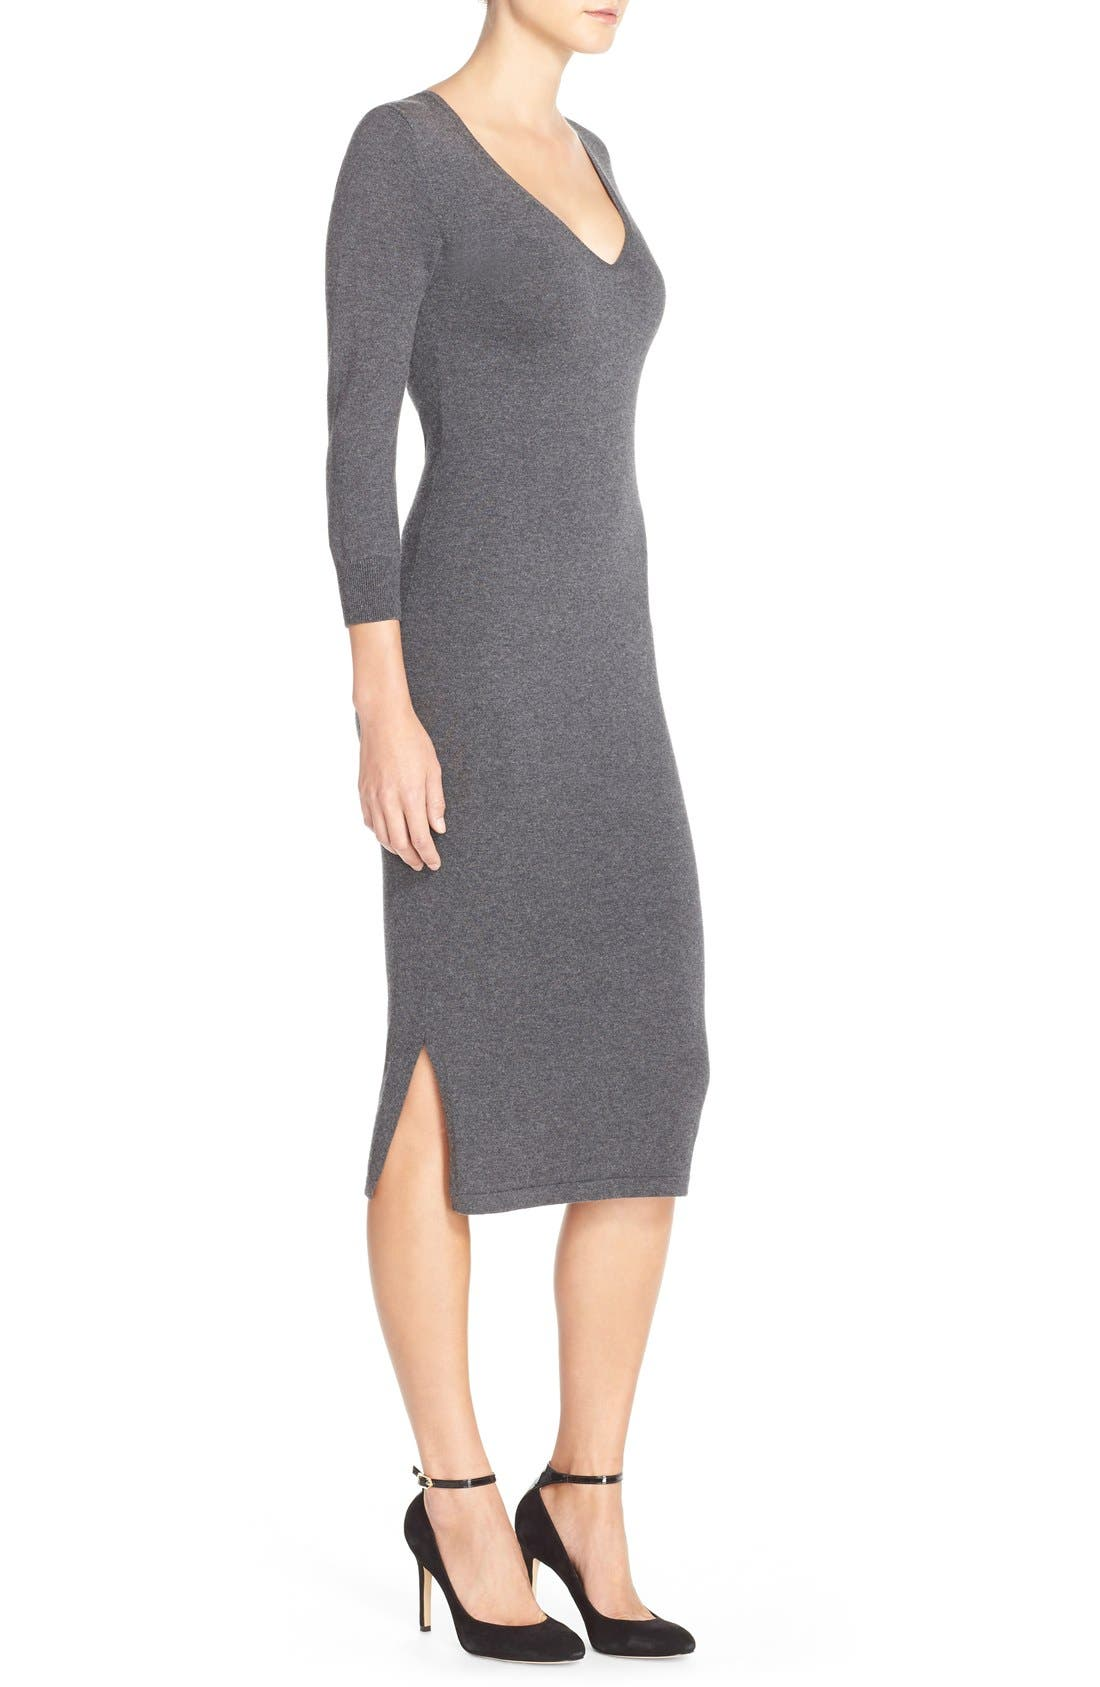 'Bambino' Knit Sweater Dress,                             Alternate thumbnail 3, color,                             023